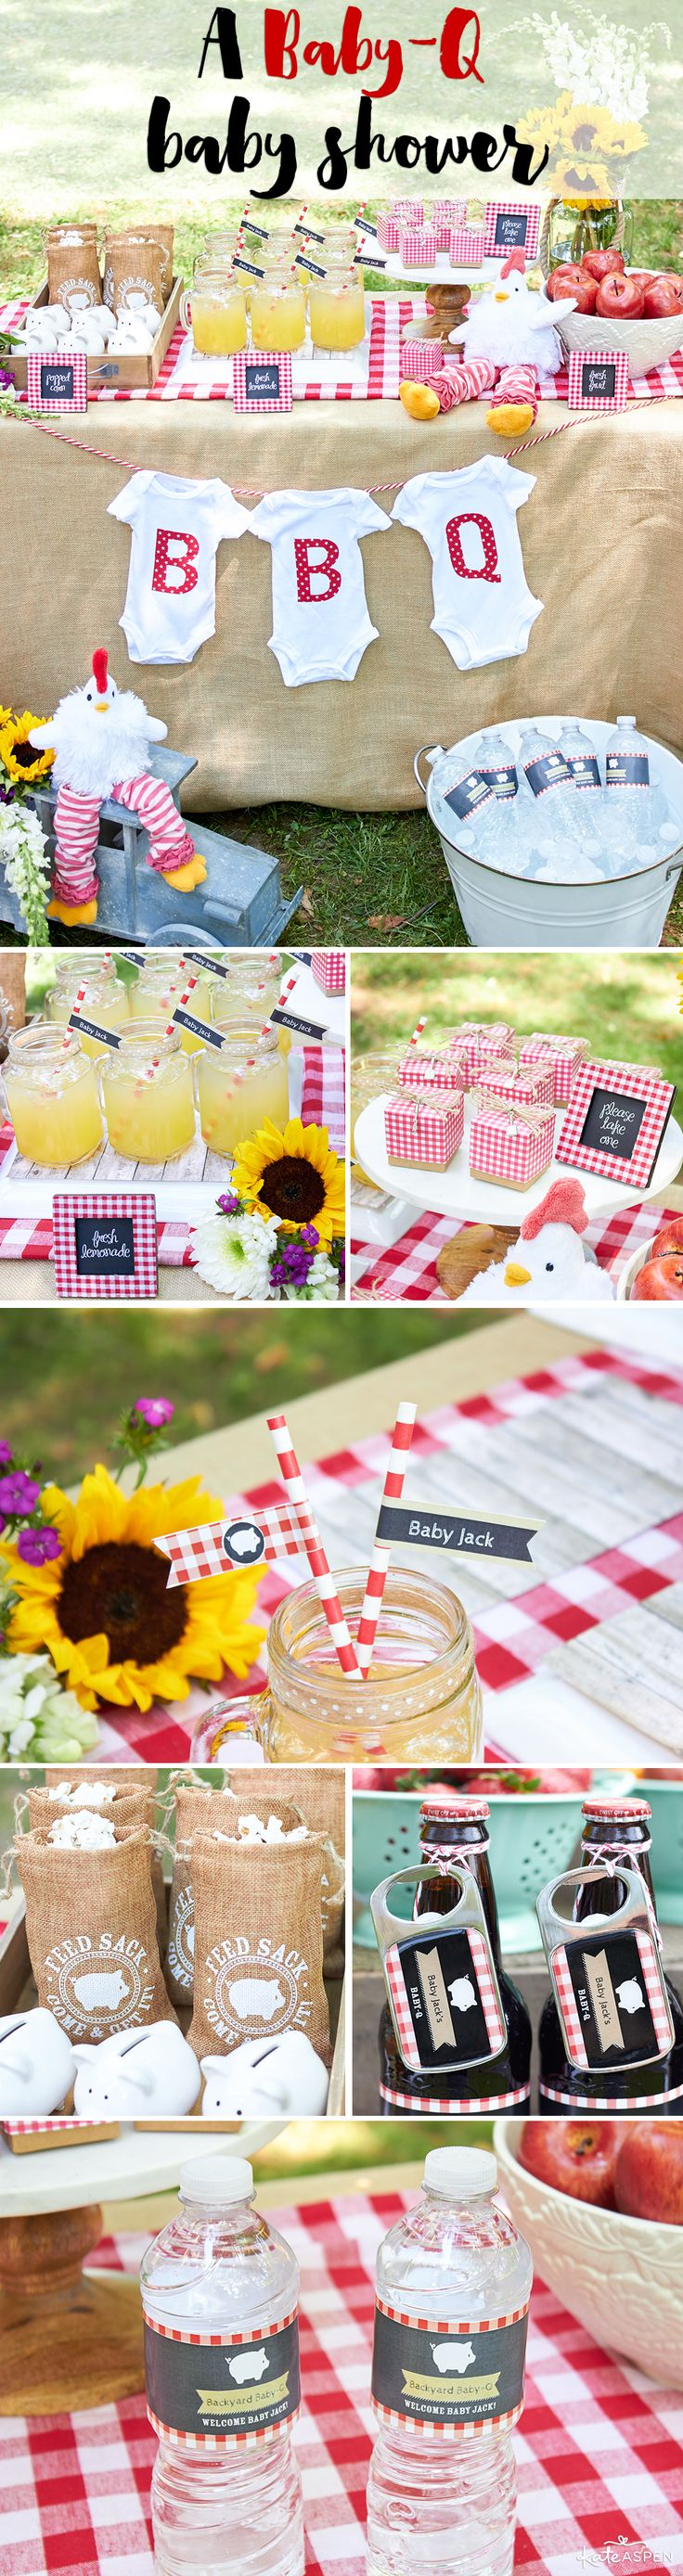 47 best {Theme} Baby Q Party images on Pinterest | Baby q shower, Baby  shower parties and Shower party